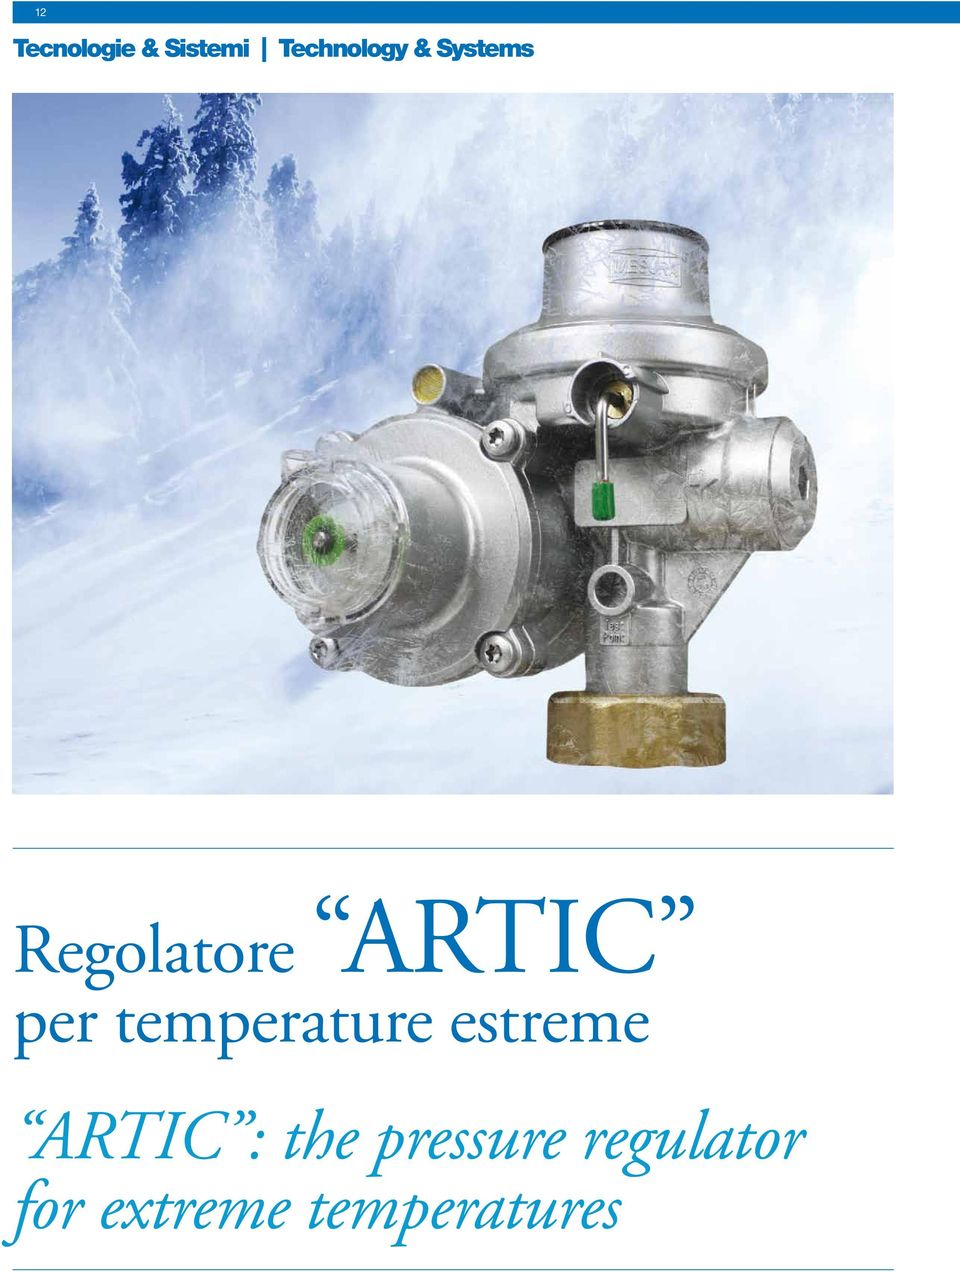 temperature estreme ARTIC : the